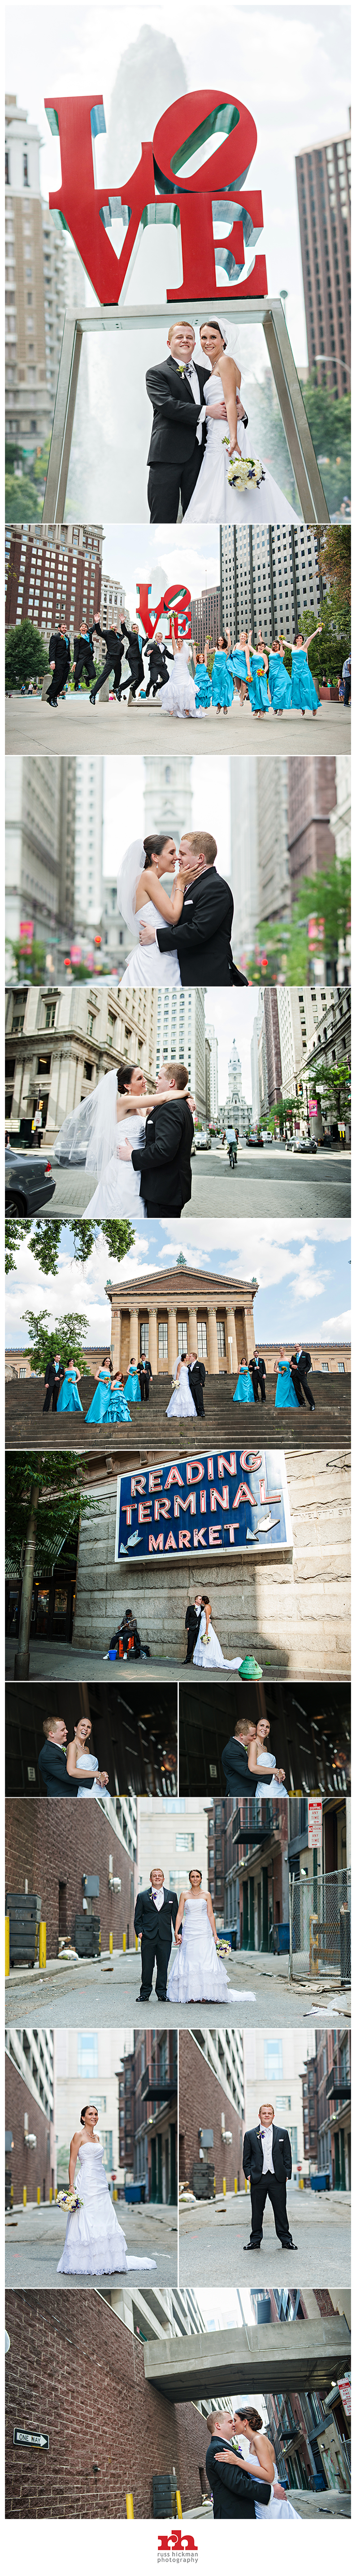 Philadelphia Wedding Photographer SCWB005